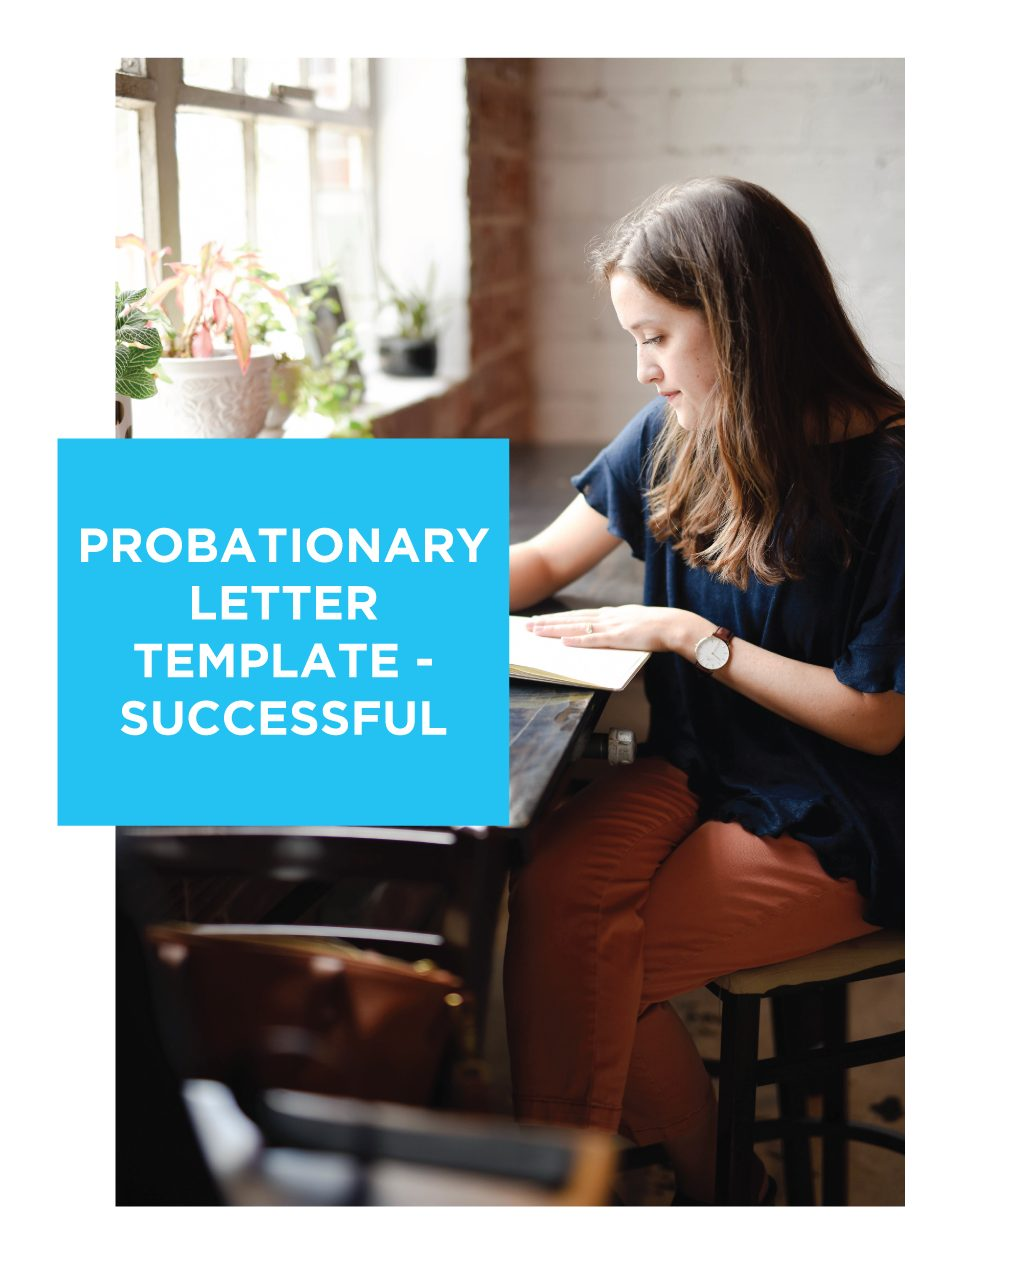 Probationary Letter Template Successful - Probation Periods - Letting go can be easier than holding on